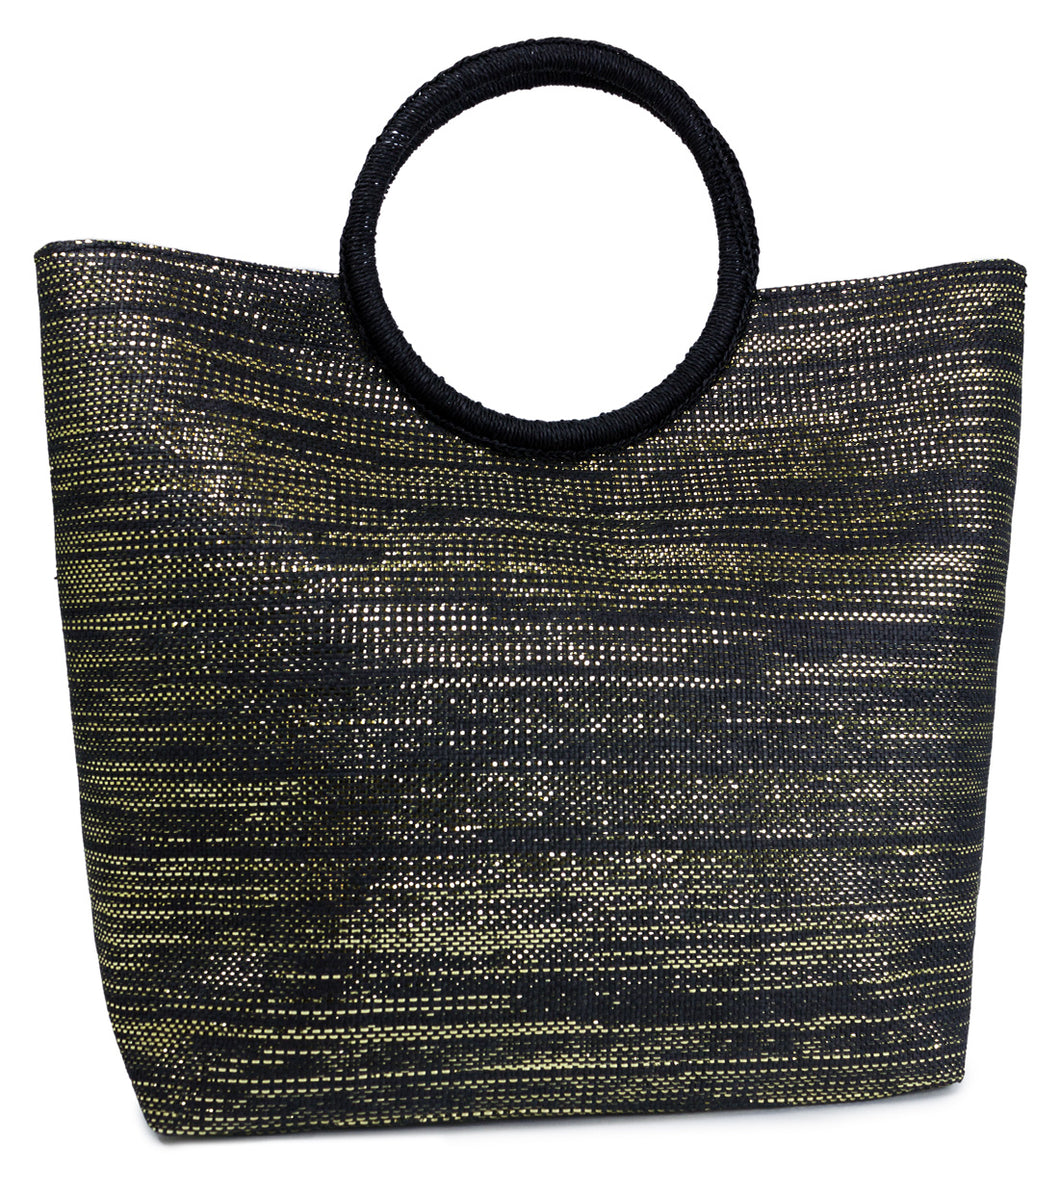 Paper Straw Solid Metallic Bag with Circular Handle - Just Jamie